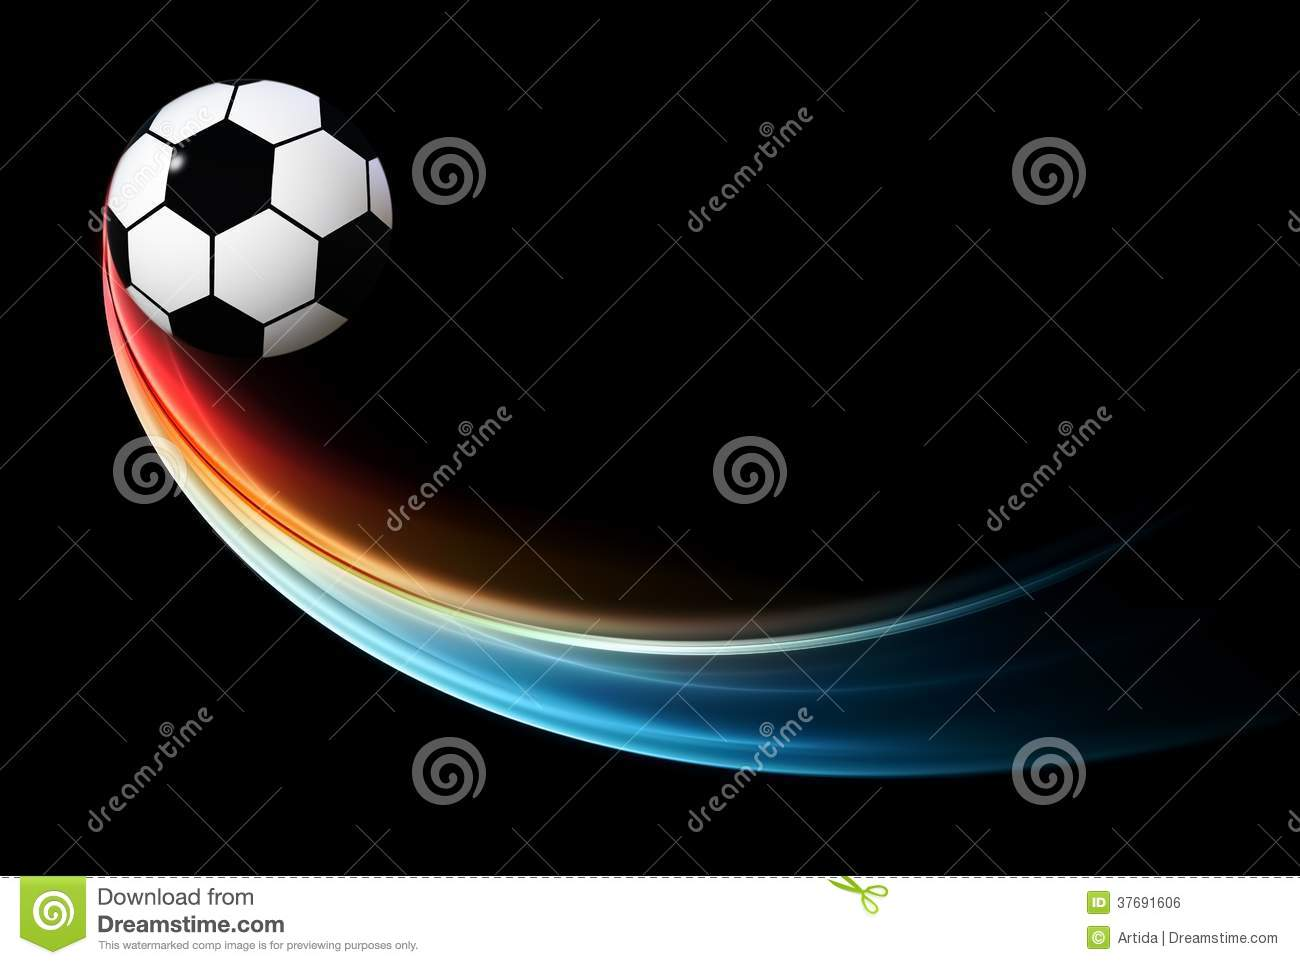 The Gallery For Flaming Football Background Images: Flying Flaming Football/soccer Ball With Blue Flame Stock